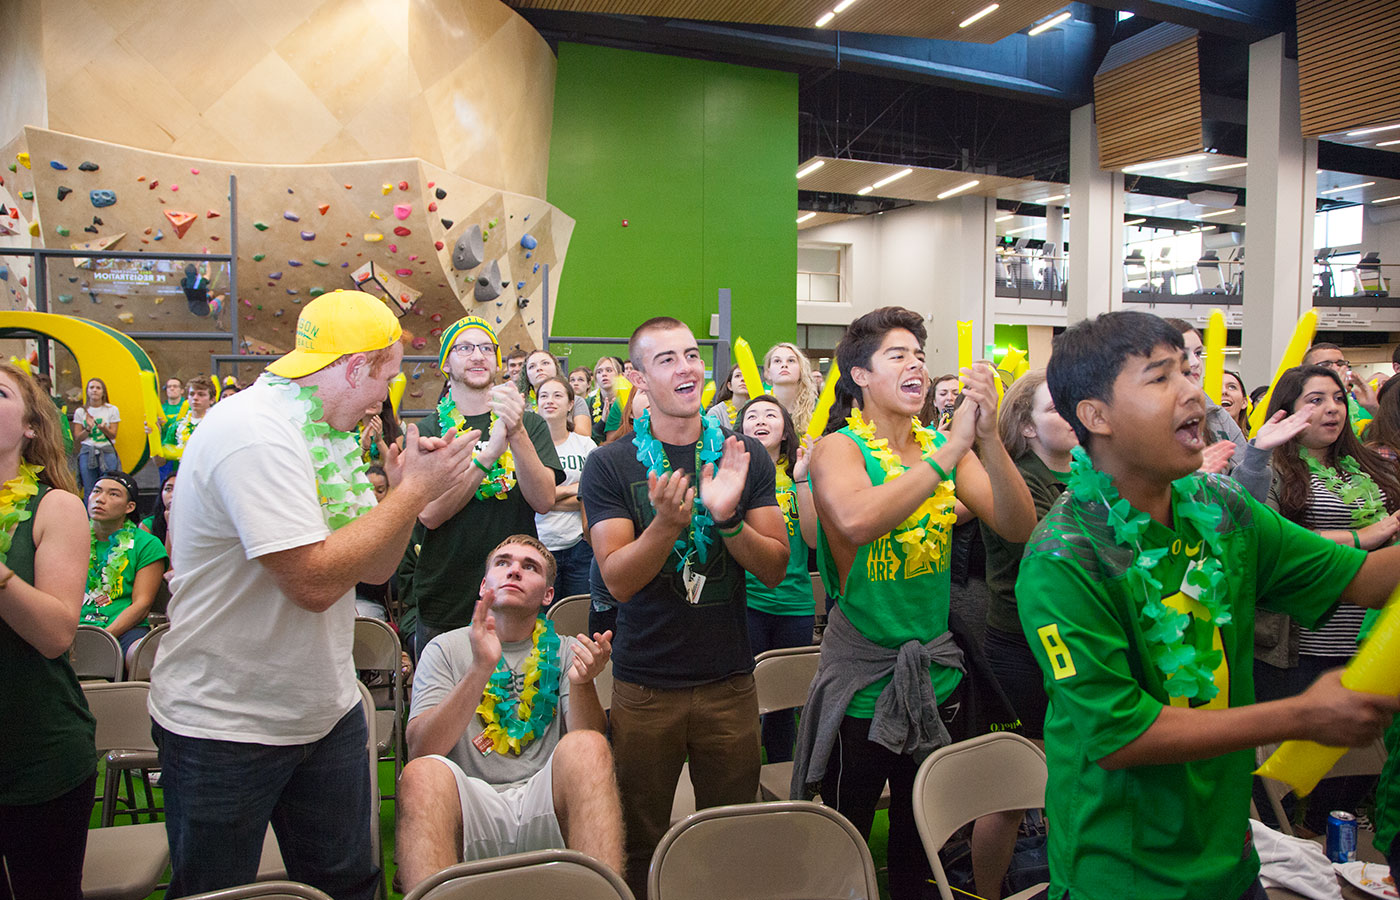 Students yell with excitement during a Ducks watch party in the Student Recreation Center.